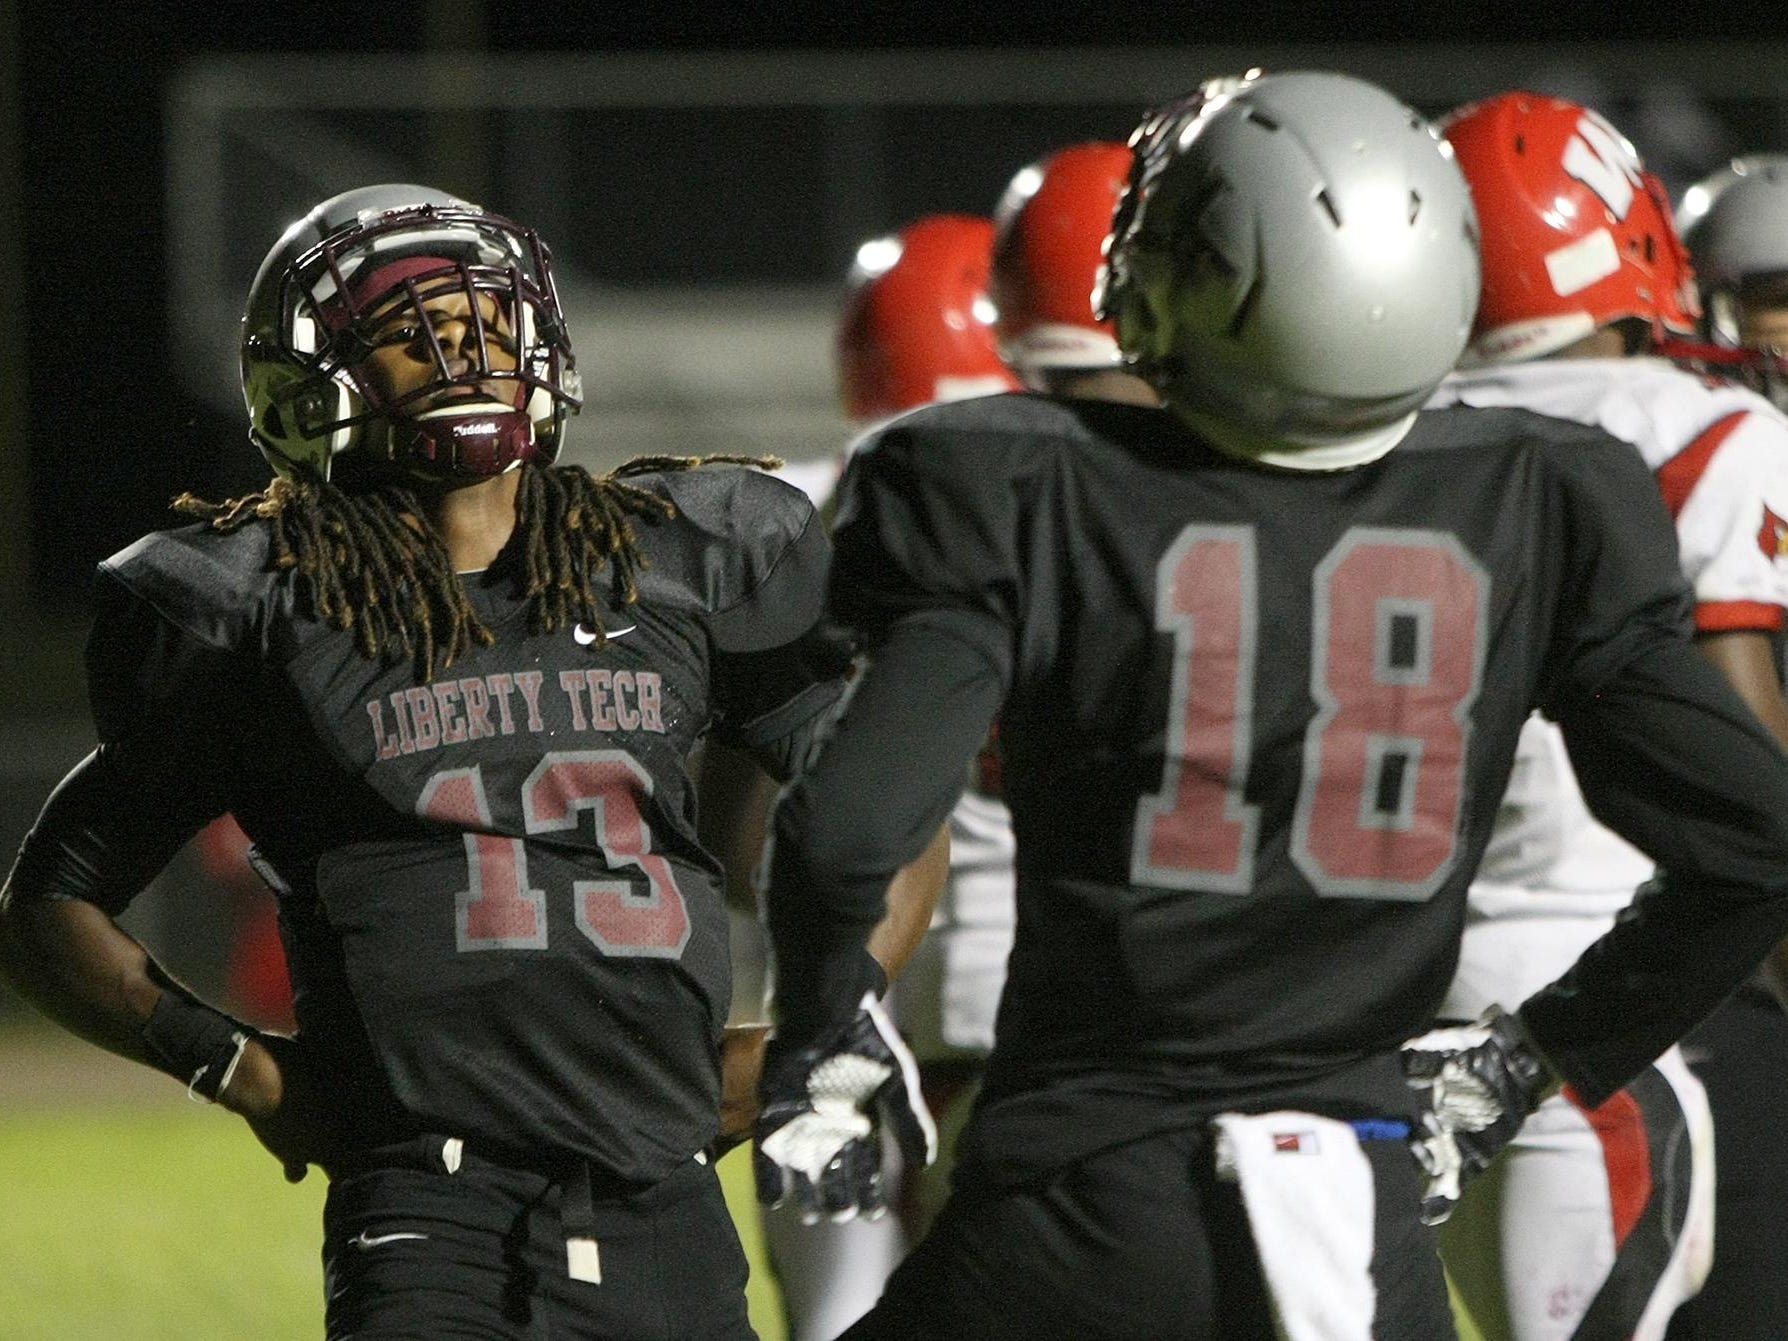 Liberty's Corey Newble (13) and Rodney Castille (18) celebrate Newble's touchdown against Wooddale at Liberty High School Friday.